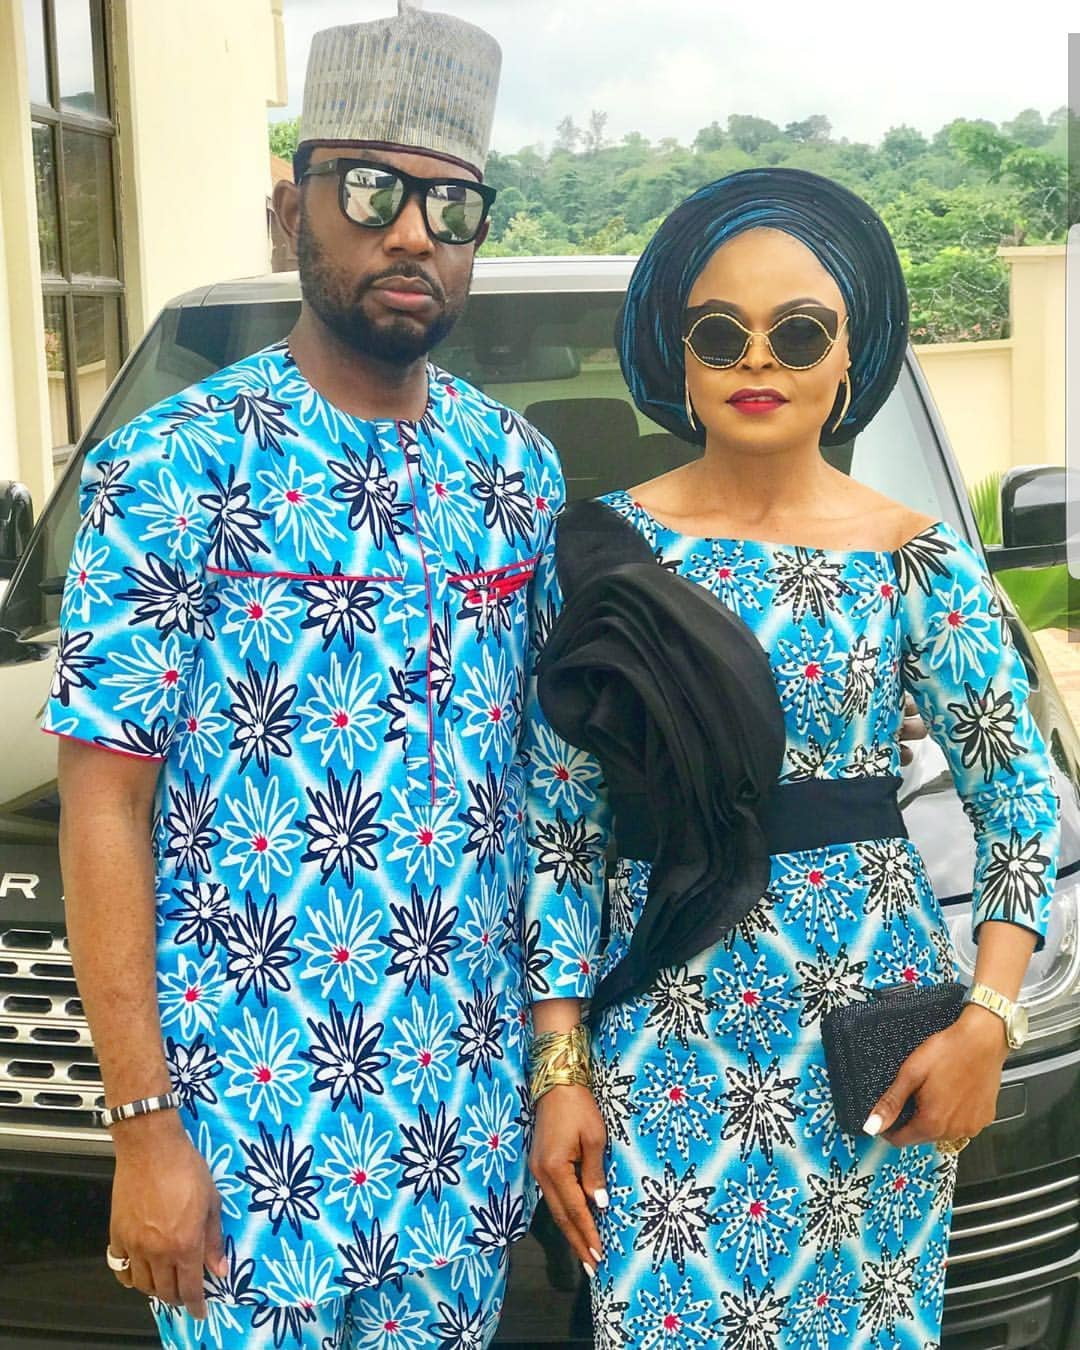 Try Out These Fabulous, Stylish Couple Outfits With Your Bae